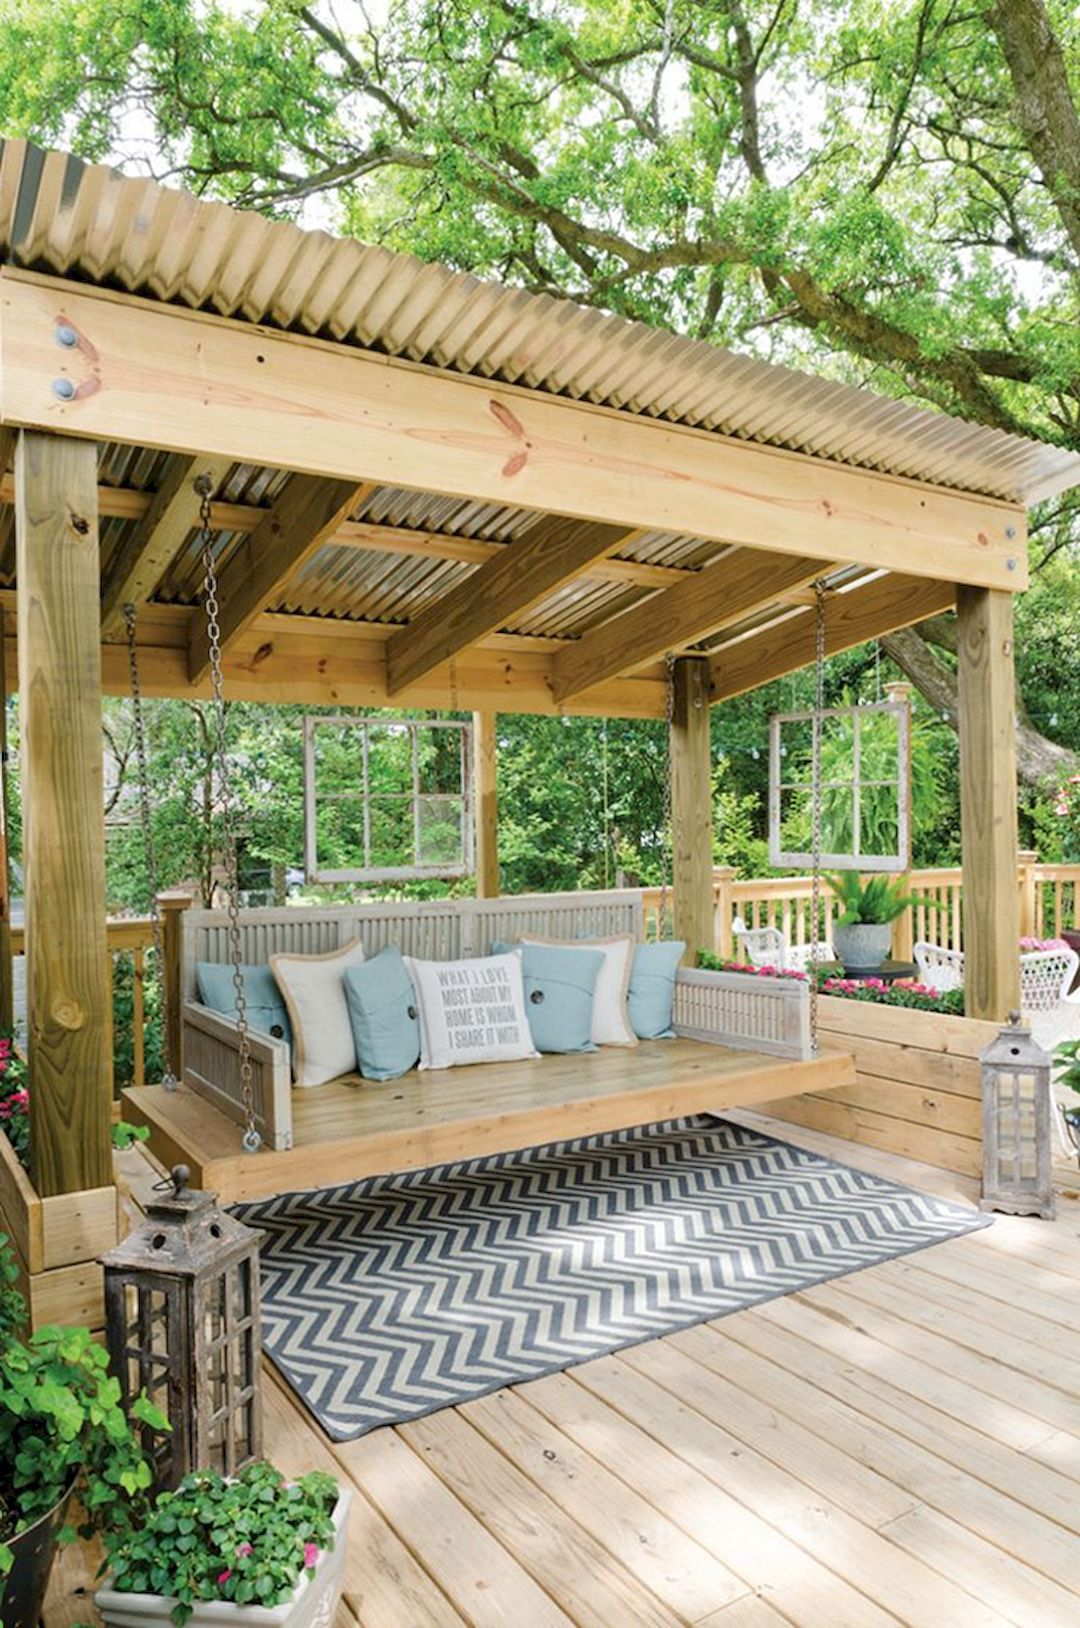 Cool Backyard Deck Design Idea 27 4